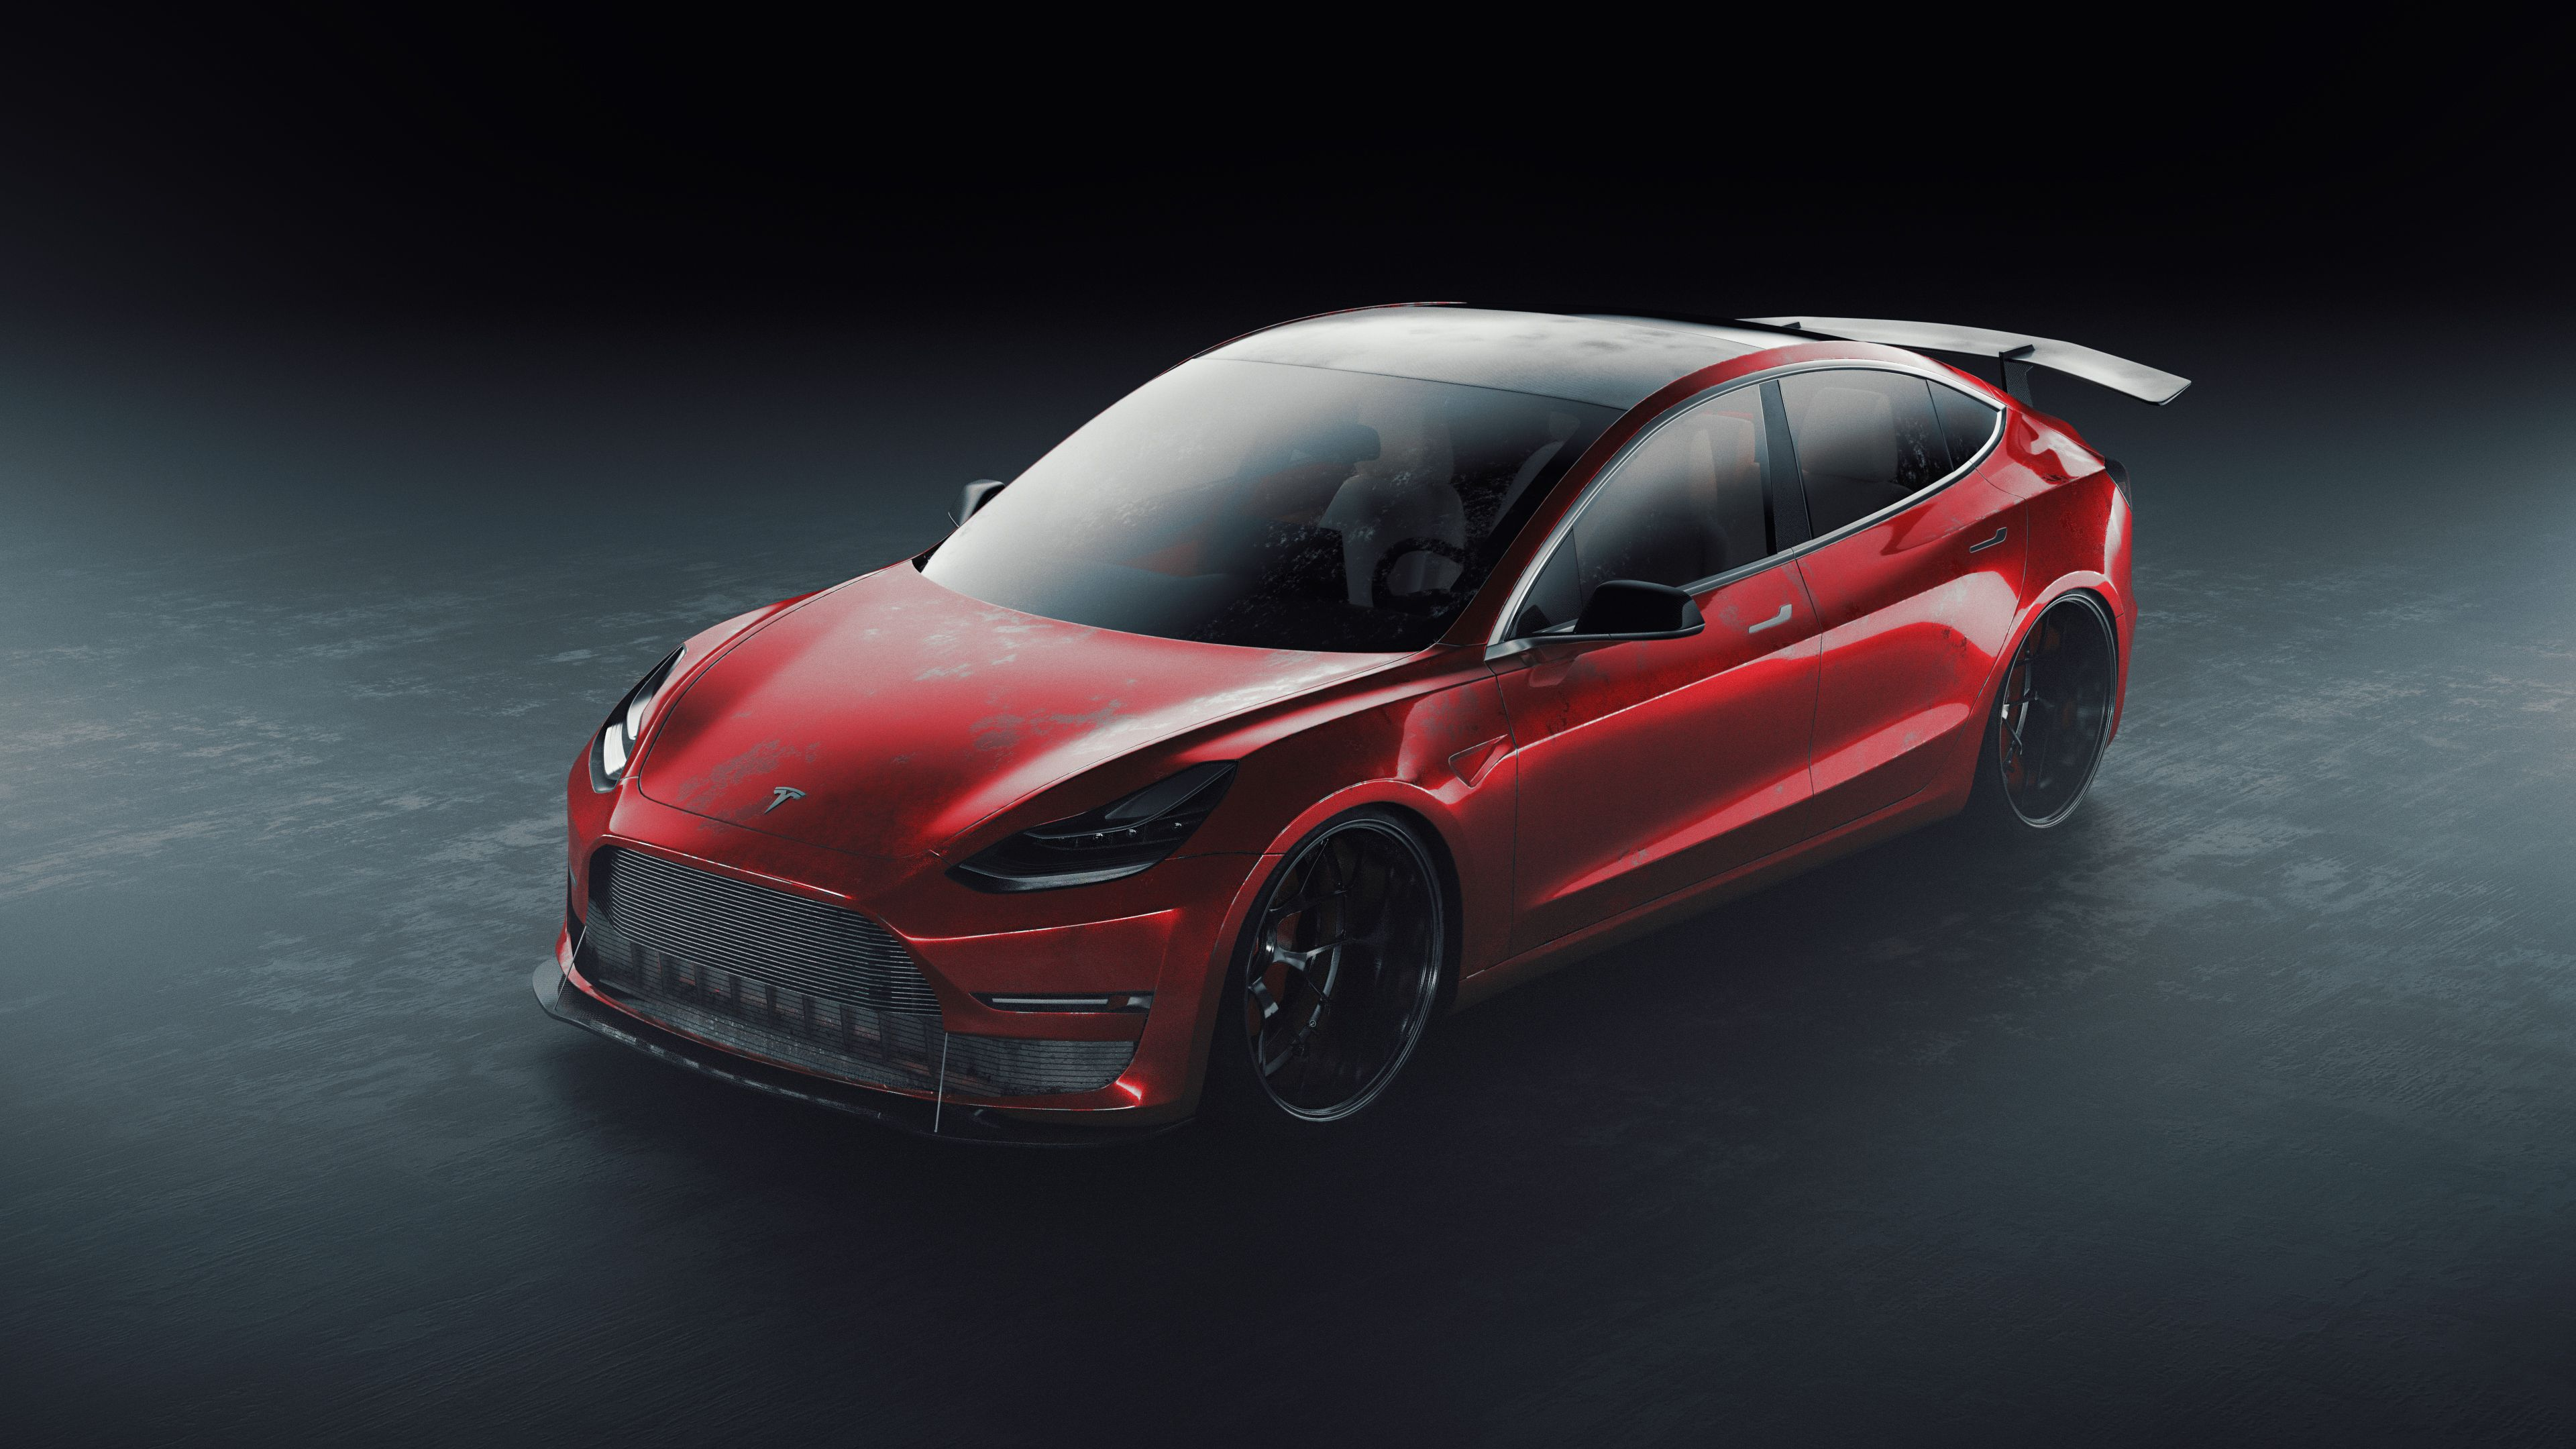 Tesla Sport 4k Red Tesla Wallpapers Hd Wallpapers Cars Wallpapers Behance Wallpapers 4k Wallpapers Tesla Sports Car Car Wallpapers Sports Car Wallpaper